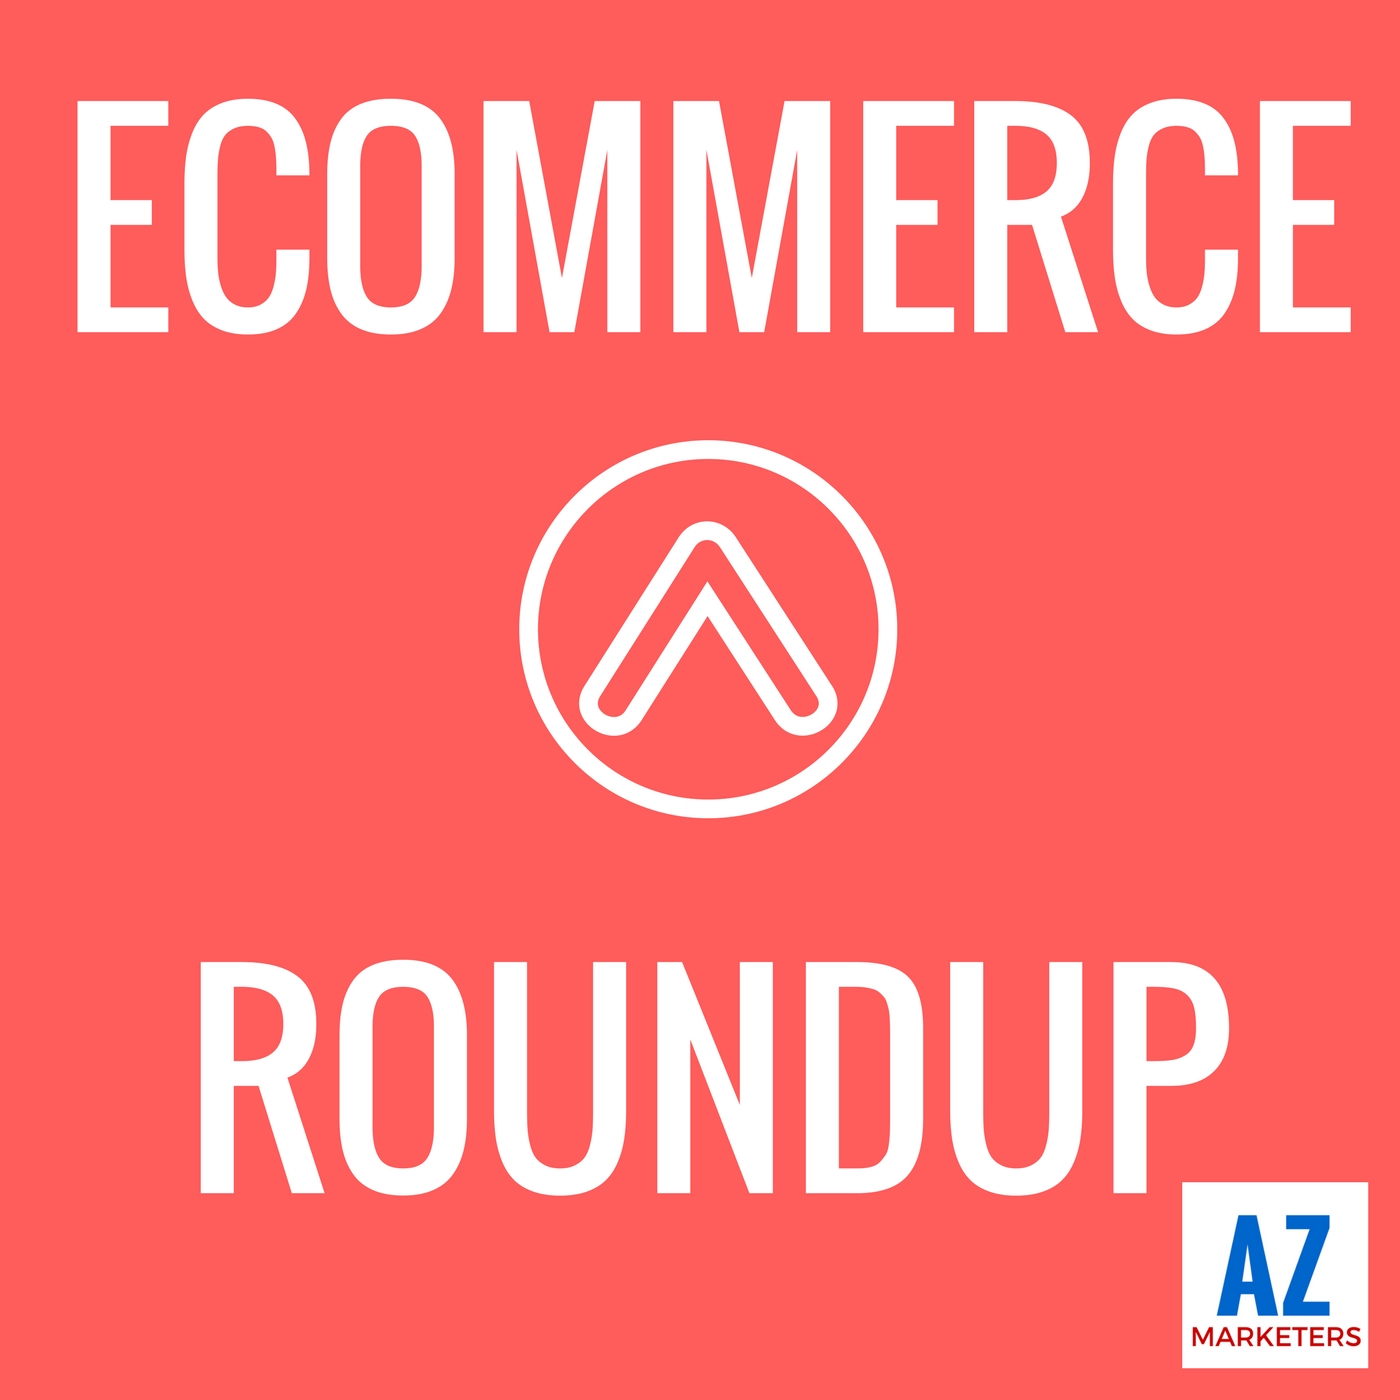 Ecommerce Roundup: Amazon, Shopify, Marketing, Advertising, Growth, Strategy